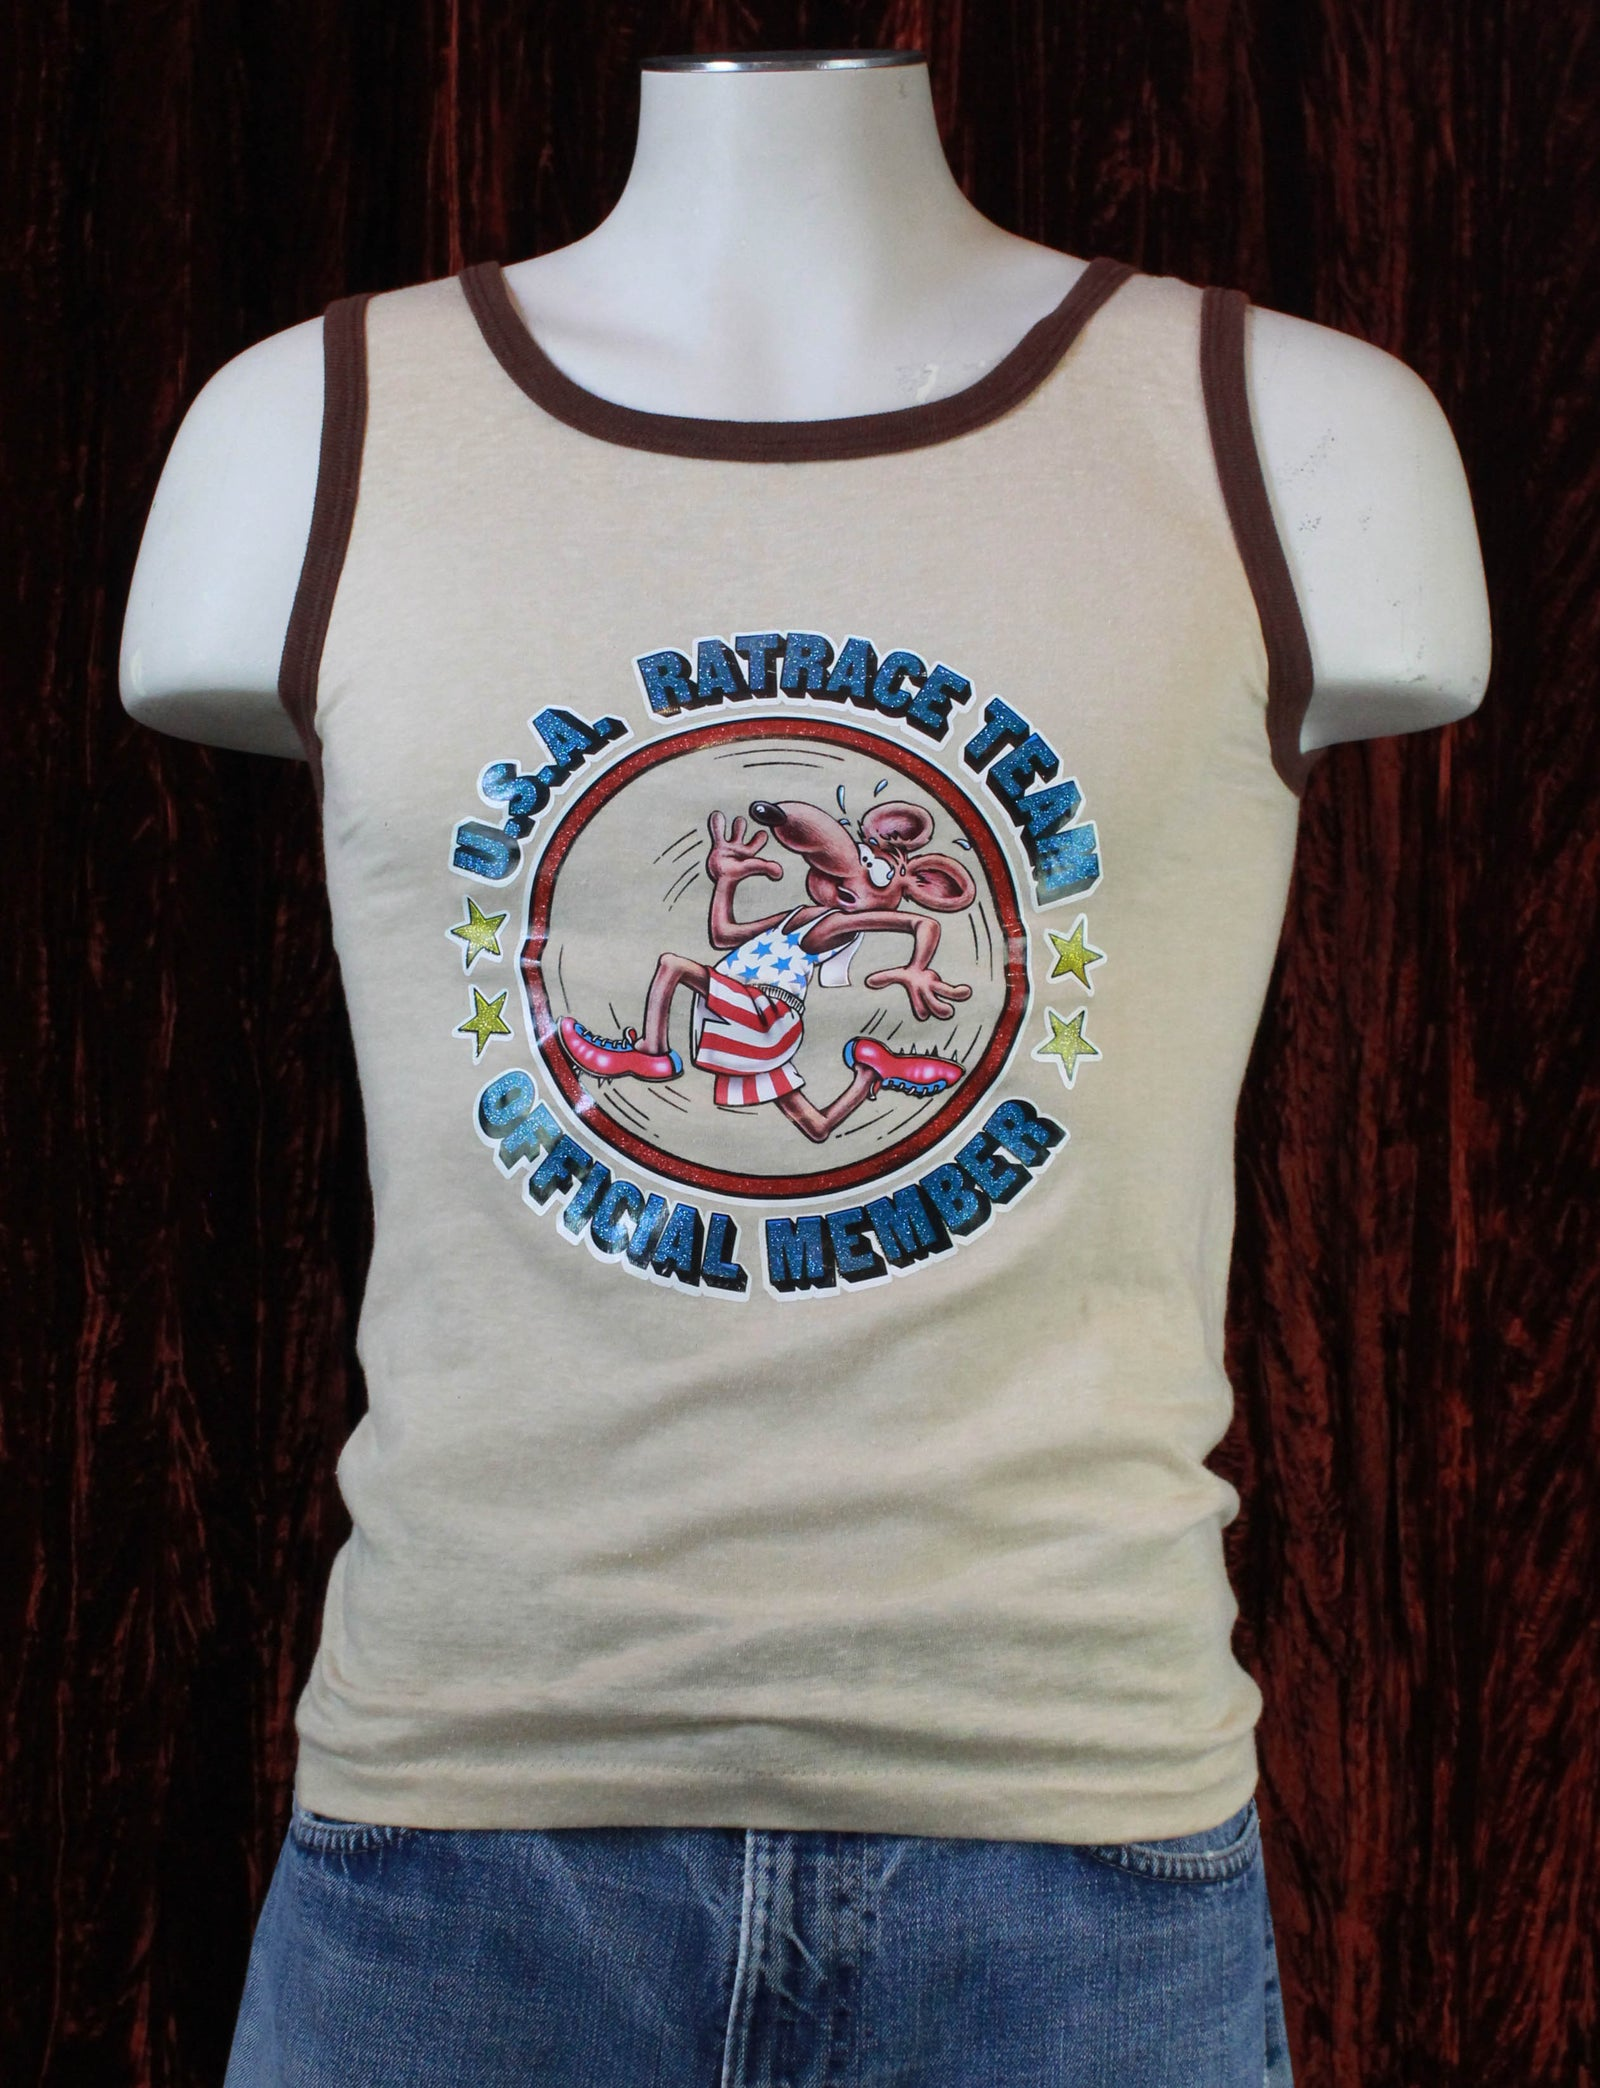 Vintage USA Ratrace Team Graphic Tank Top - Small